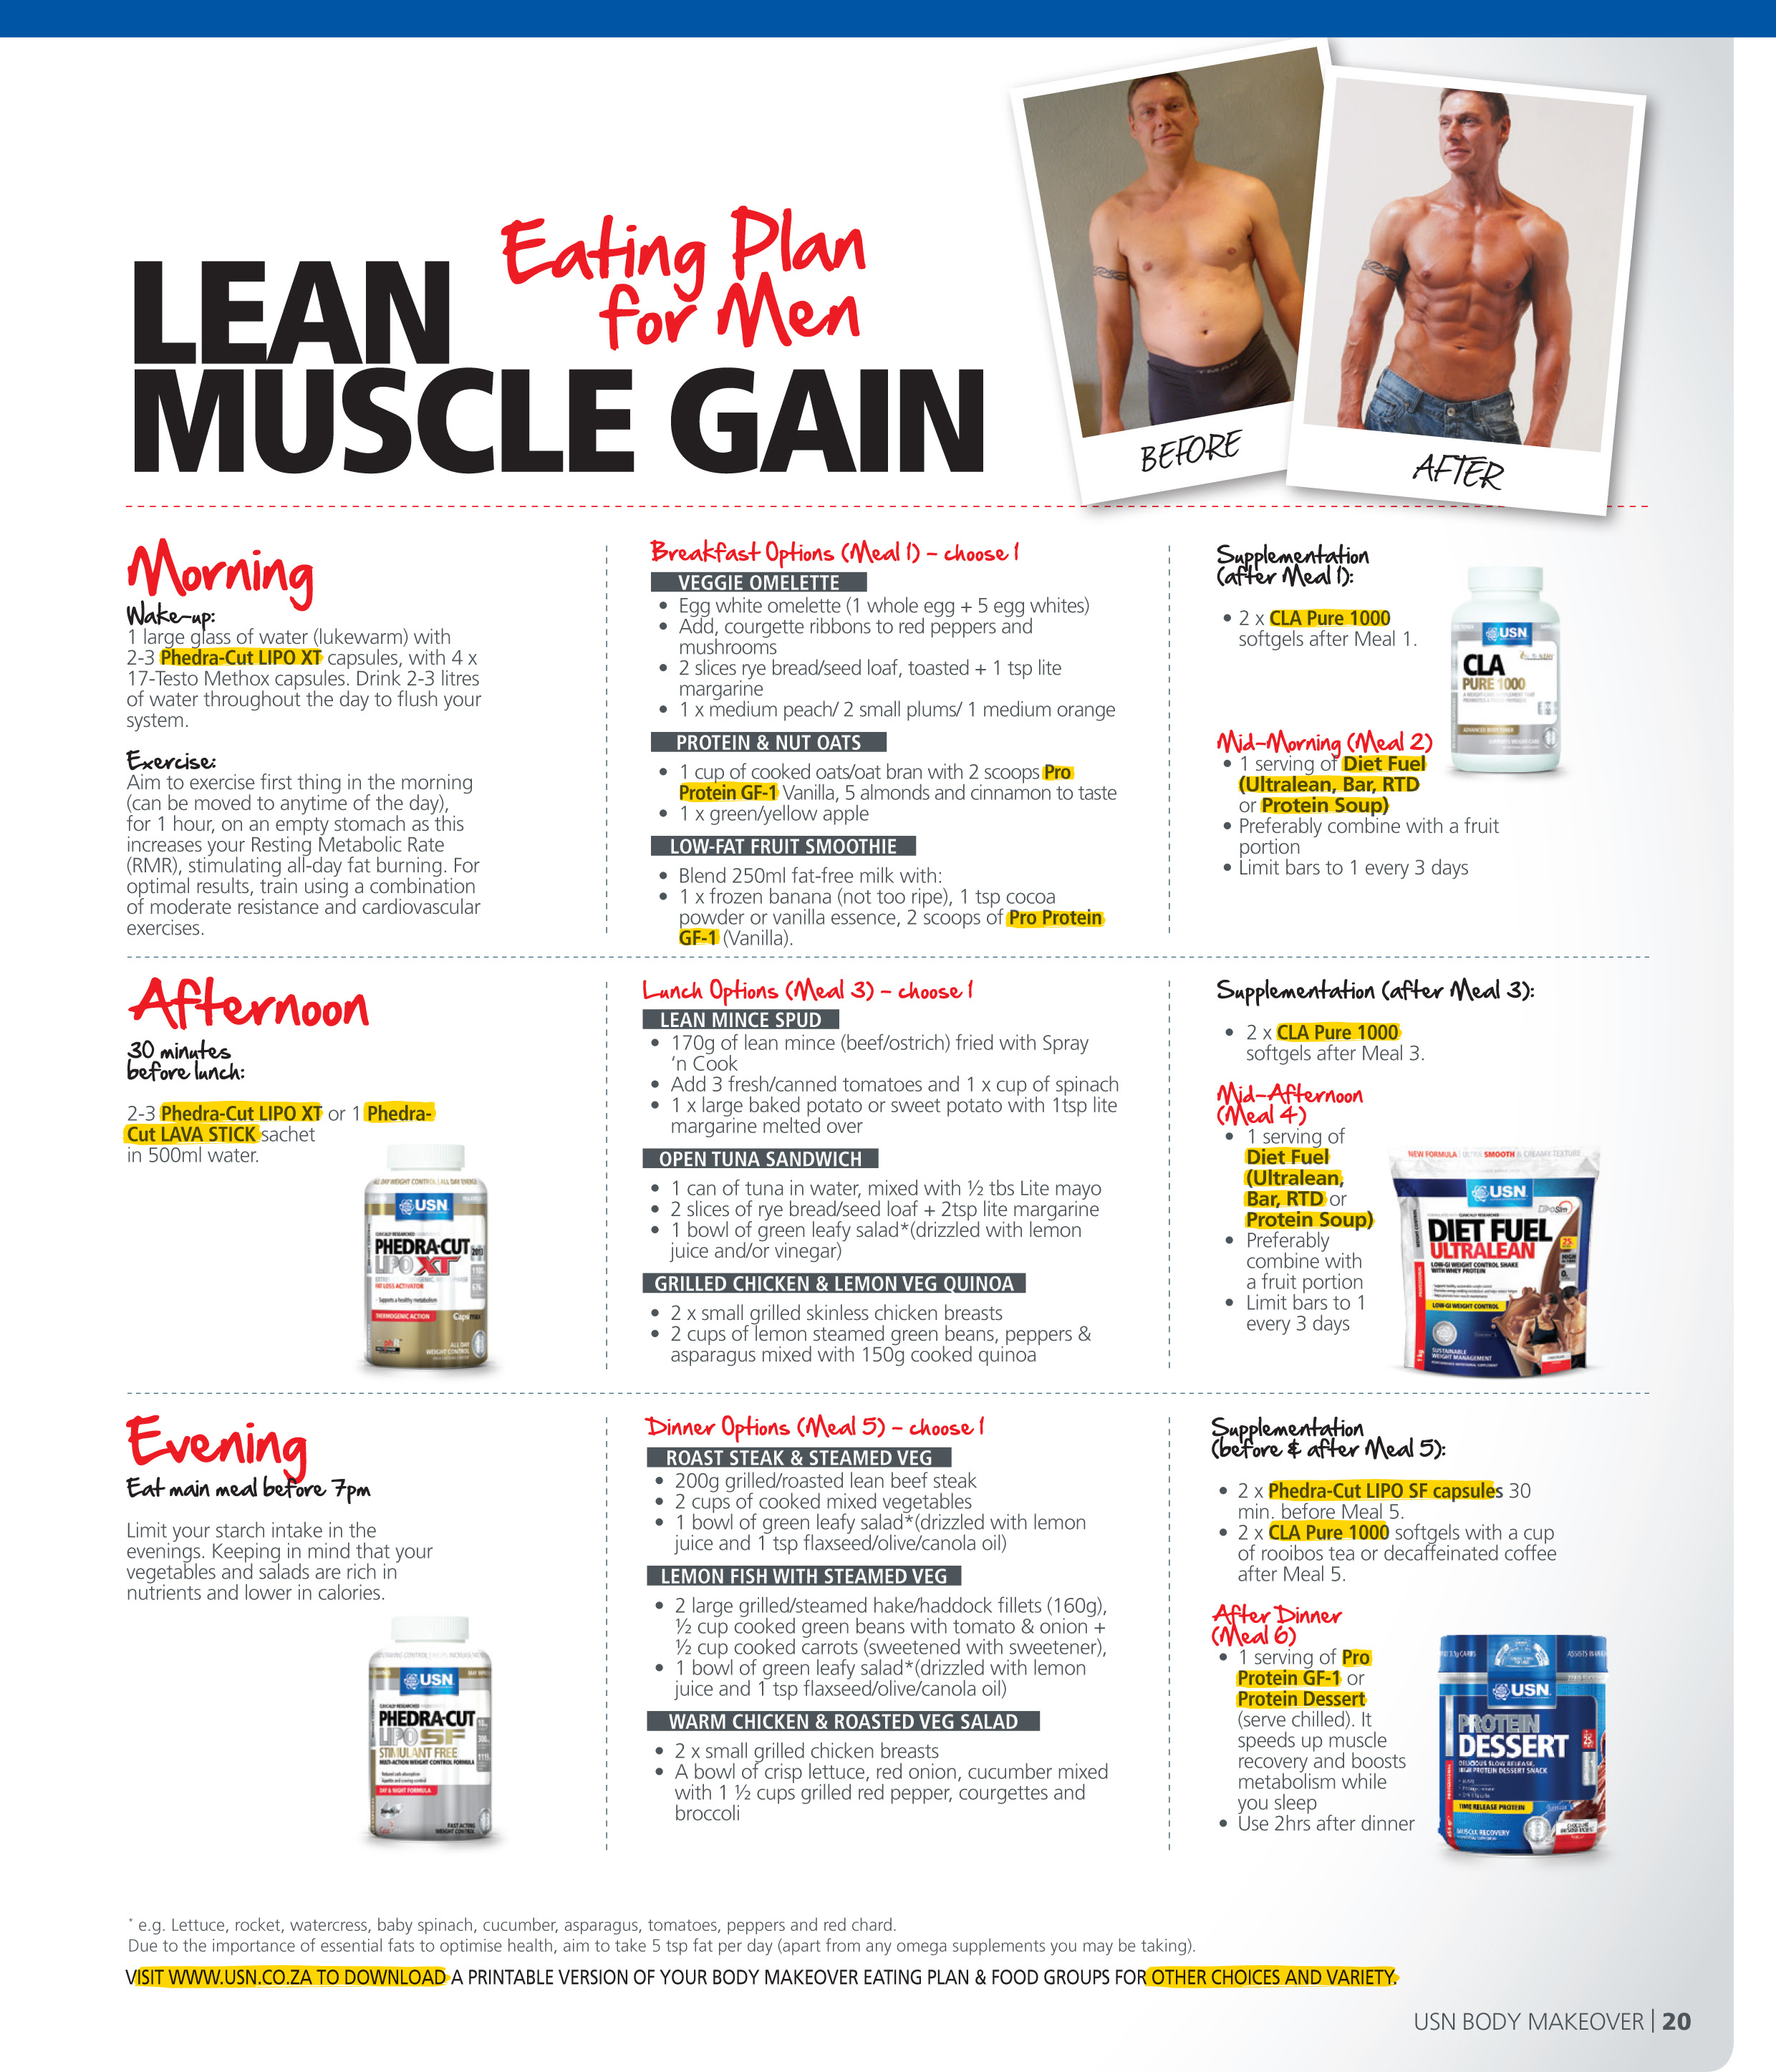 Top 10 Punto Medio Noticias Diet Plan For Weight Loss And Muscle